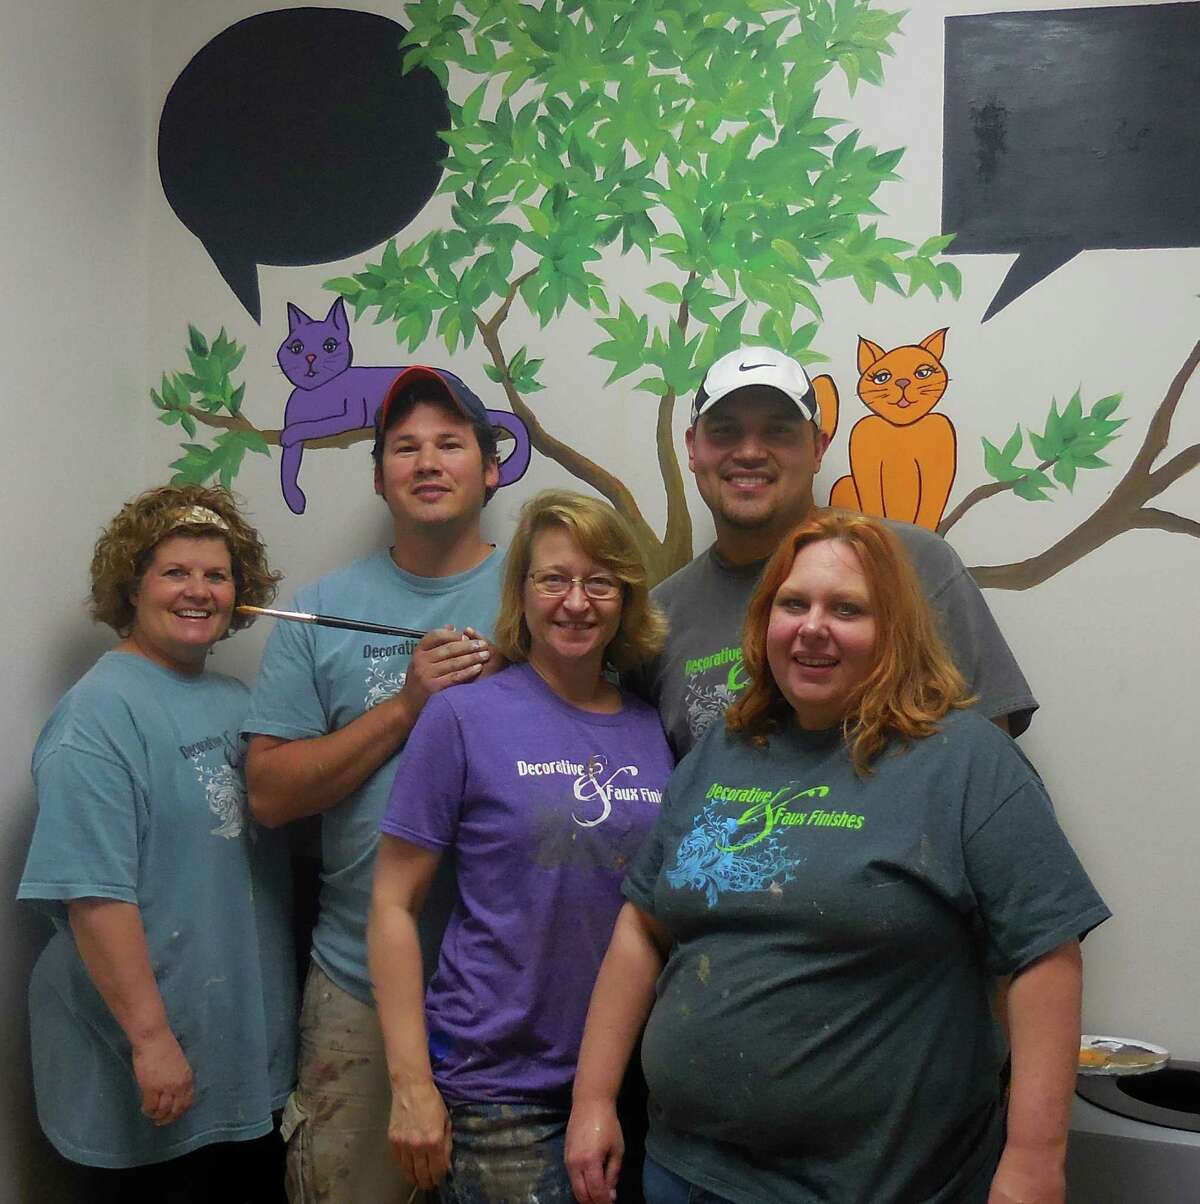 Decorative & Faux Finishes and Heritage Paints decorated the Missouri City Animal Shelter. From left, front row are Dana Debuck, co-owner; Cindy Howard co-owner, and Nancy Parsons, employee; Back row: Chris Garcia and John Hernandez, both employees.